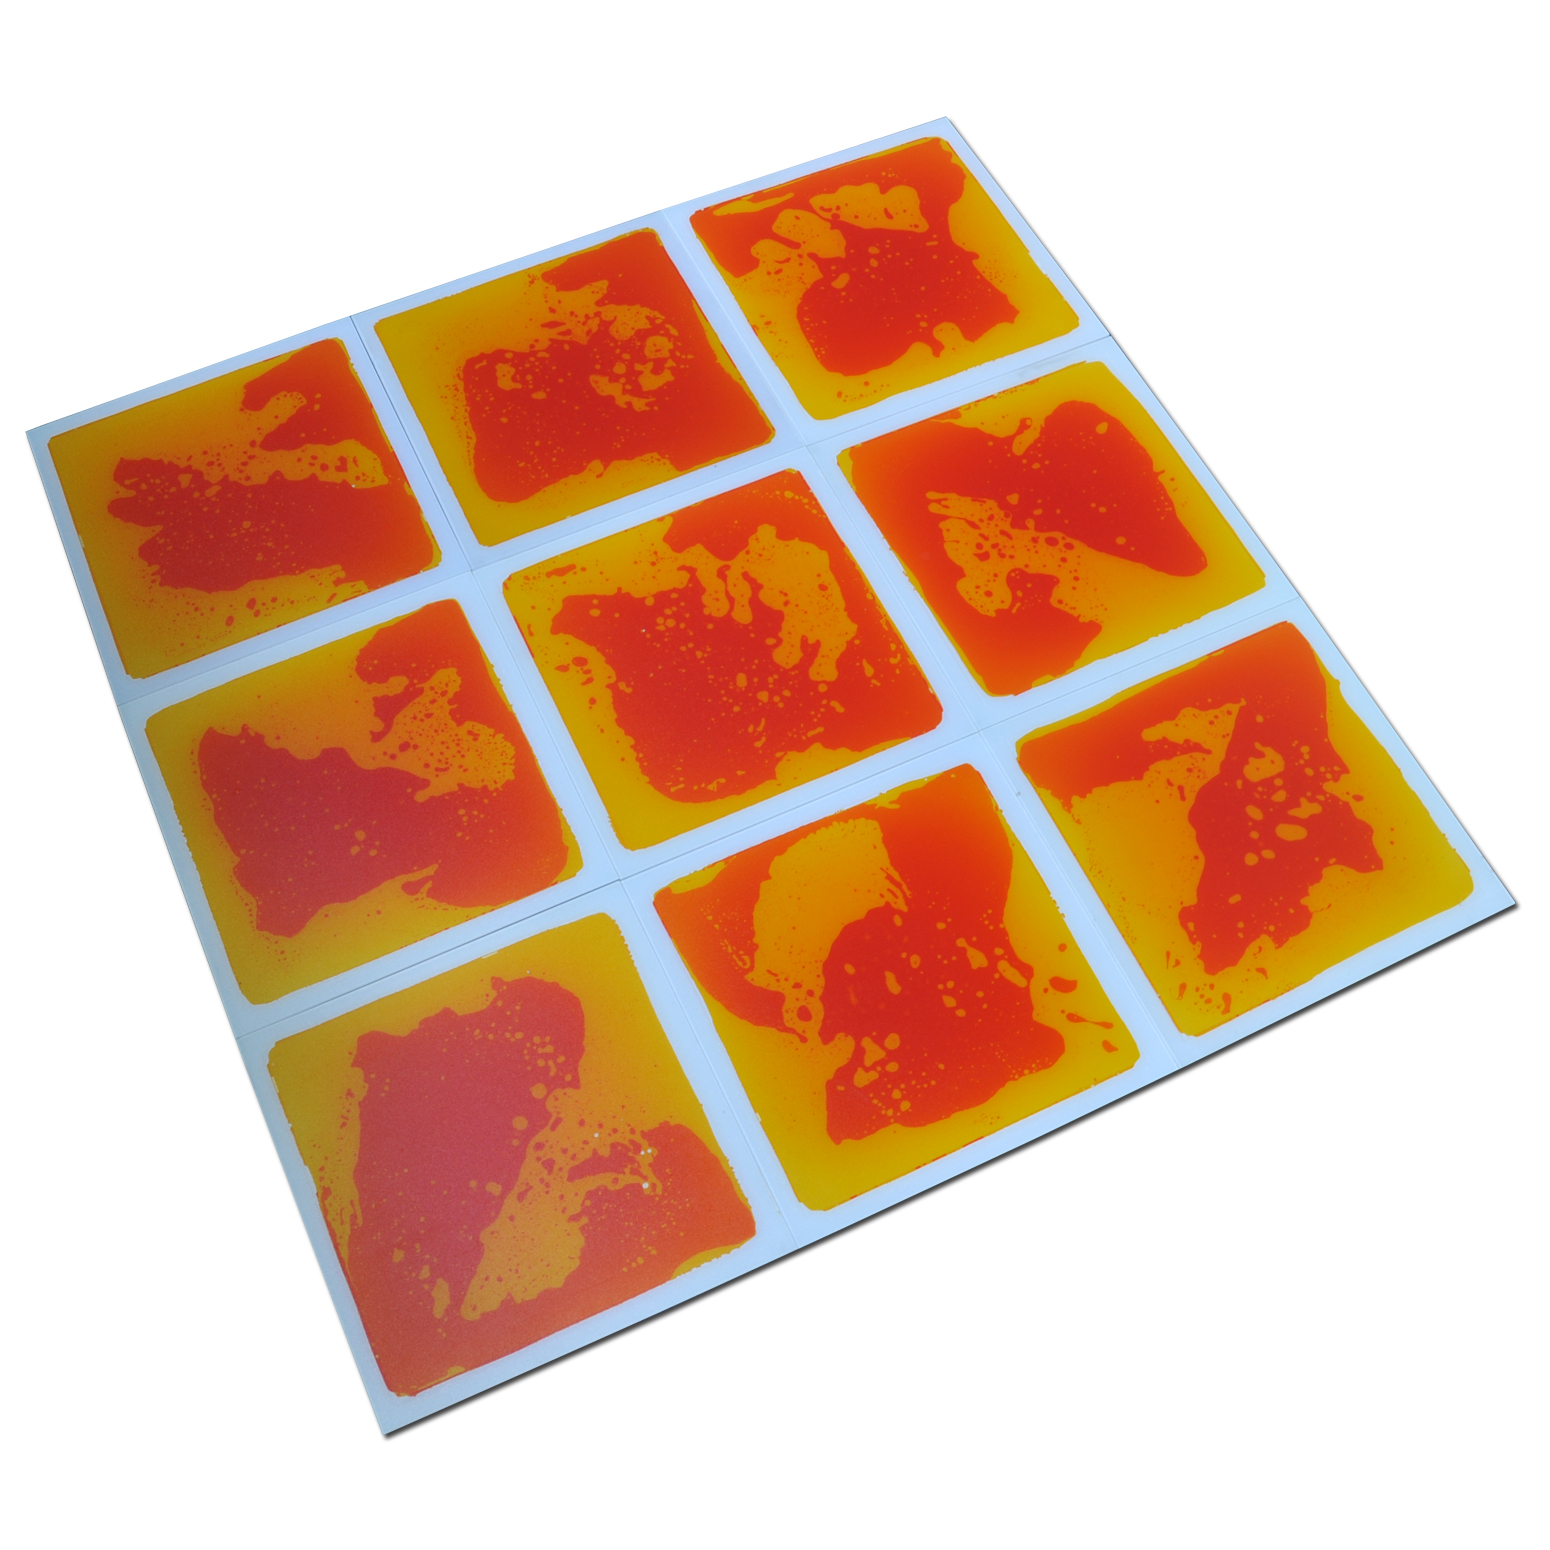 A11306 12x12 orange liquid floor tile in home decor tiles for a11306 12x12 orange liquid floor tile in home decor tiles for bar nightclub ktv decoration 30cm flooring tiles dailygadgetfo Choice Image